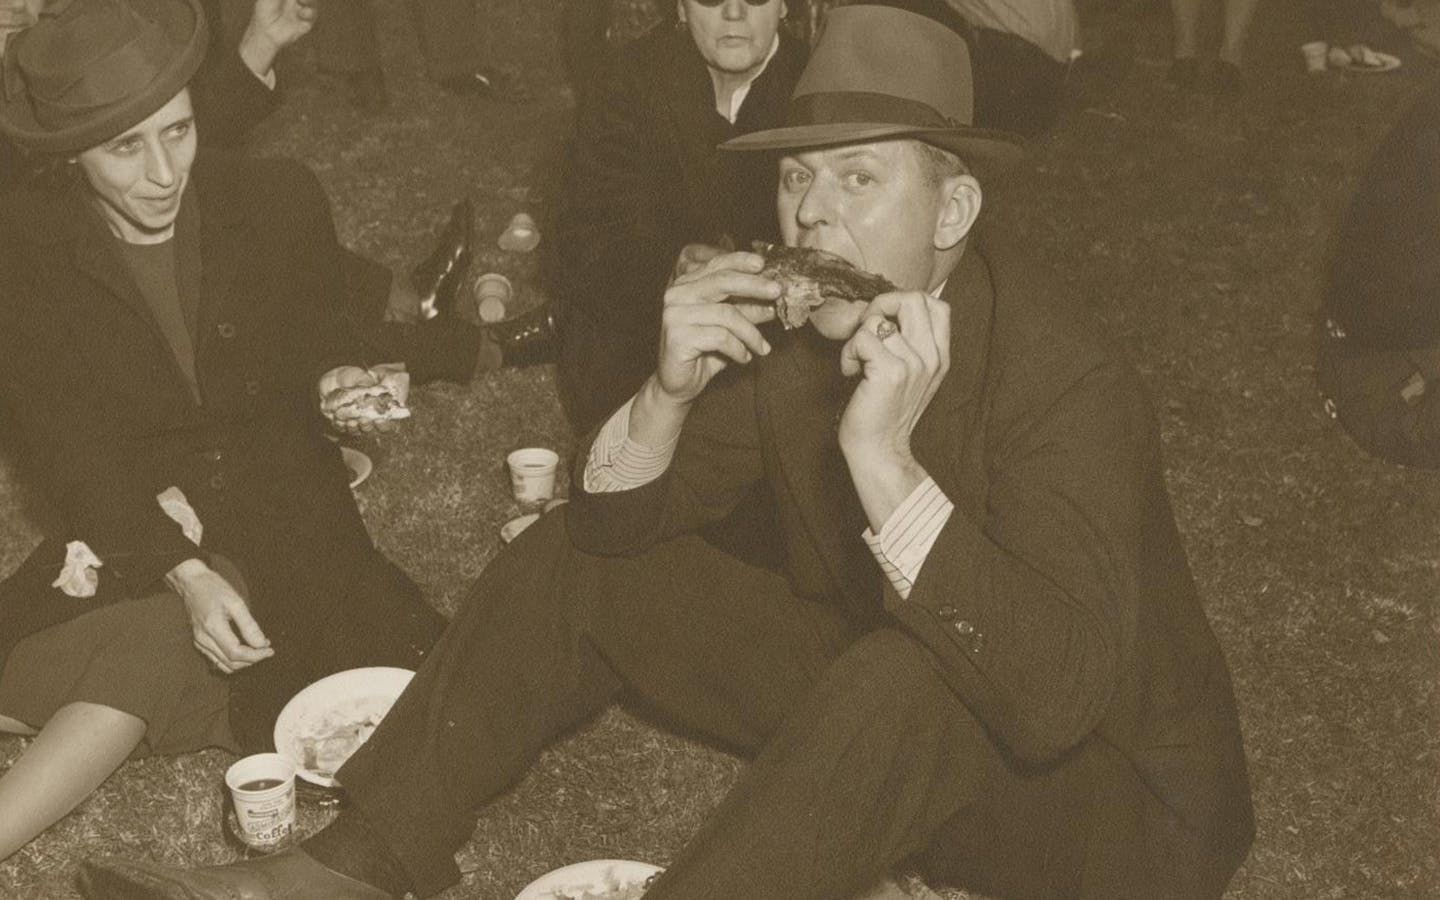 Barbecue cook-offs were rare before the 1970s. In this photo from the early 1940s, a Texas man digs into a rib.